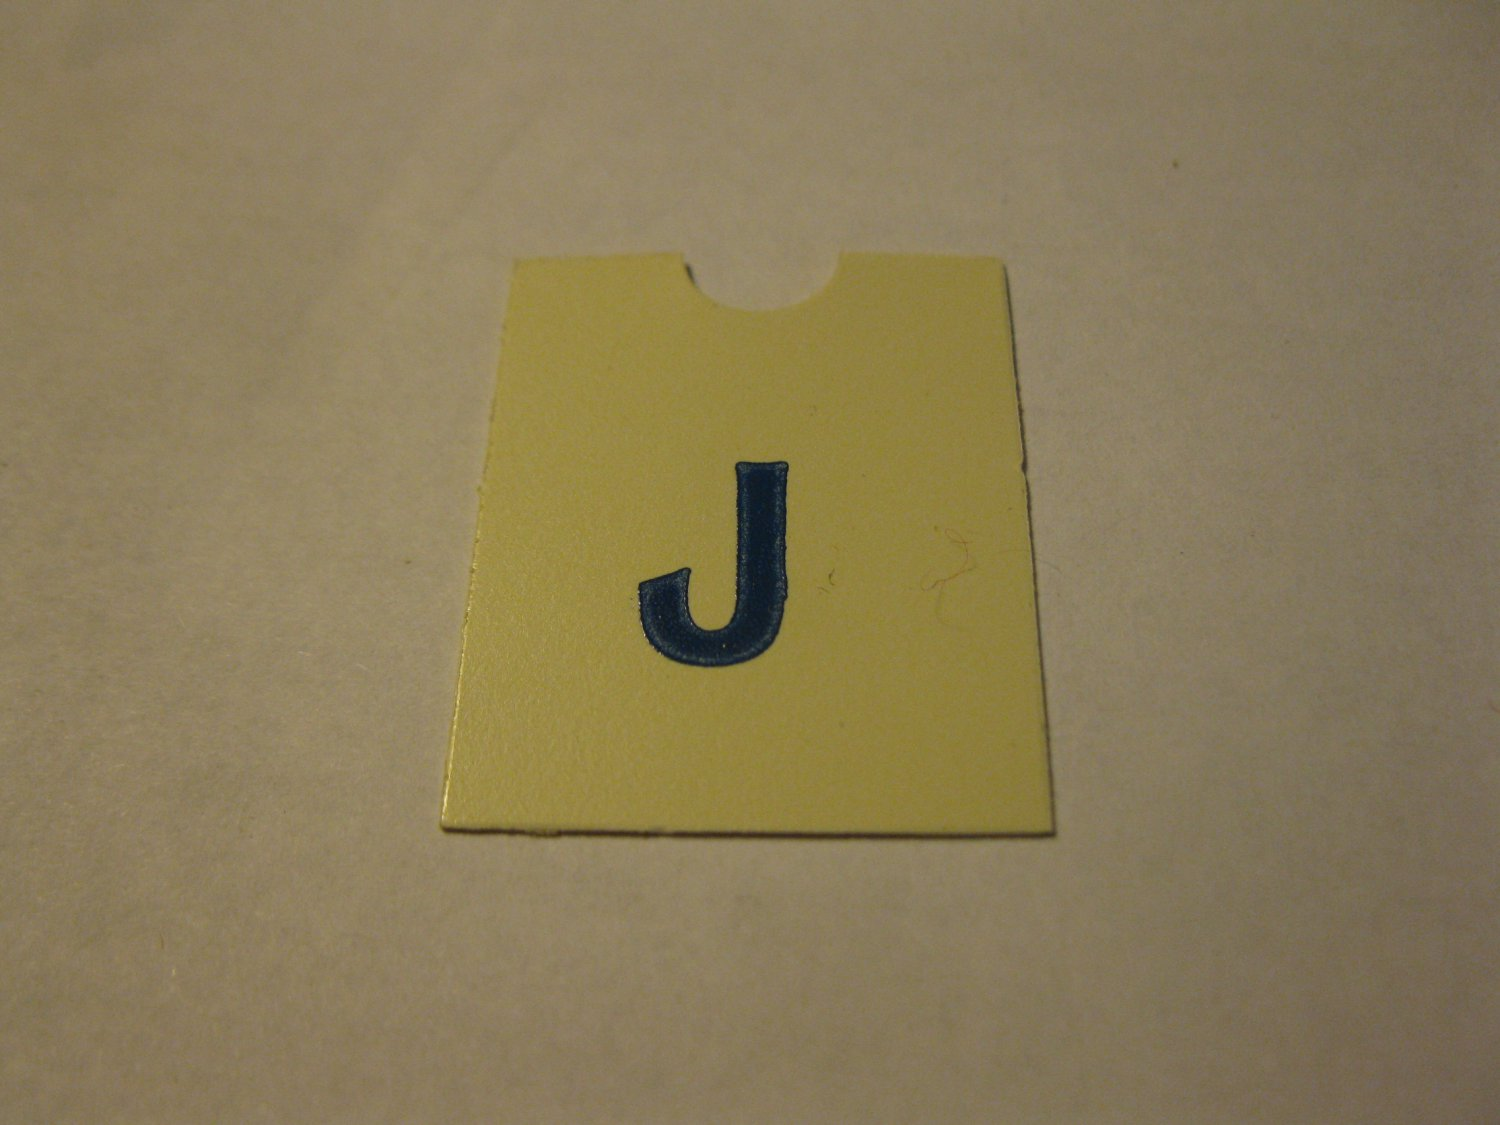 1967 4CYTE Board Game Piece: Blue Letter Tab - J